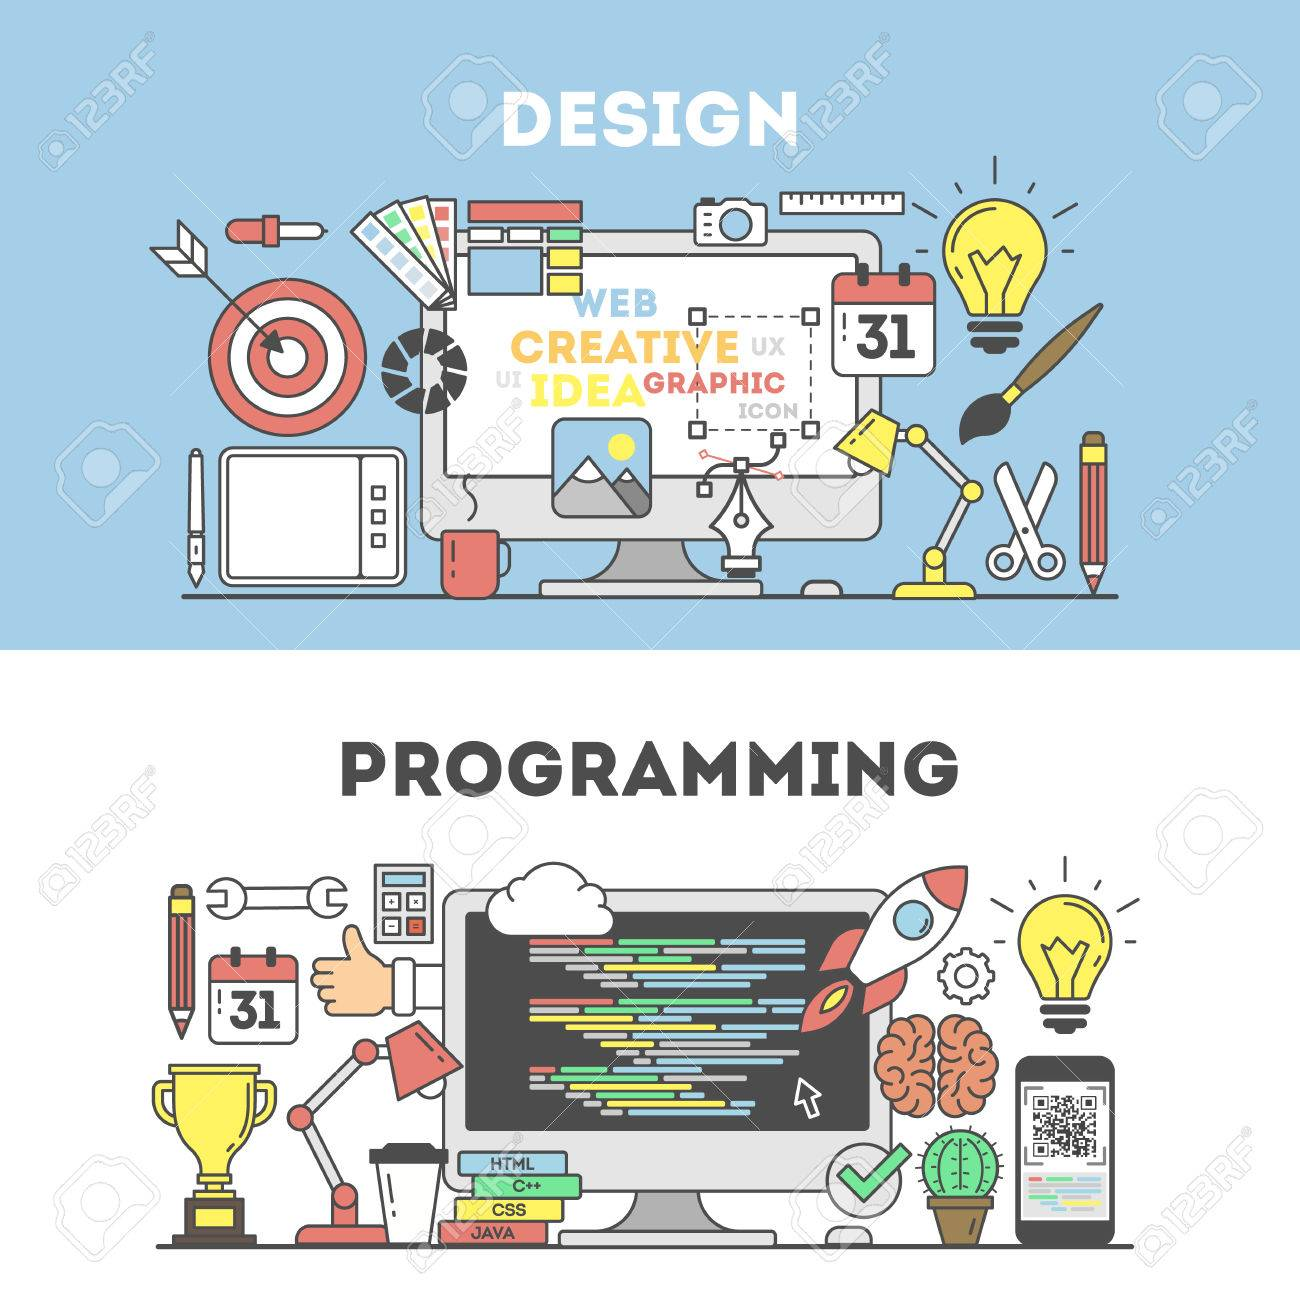 Programming and design concept illustration signs and icons on blue background stock vector